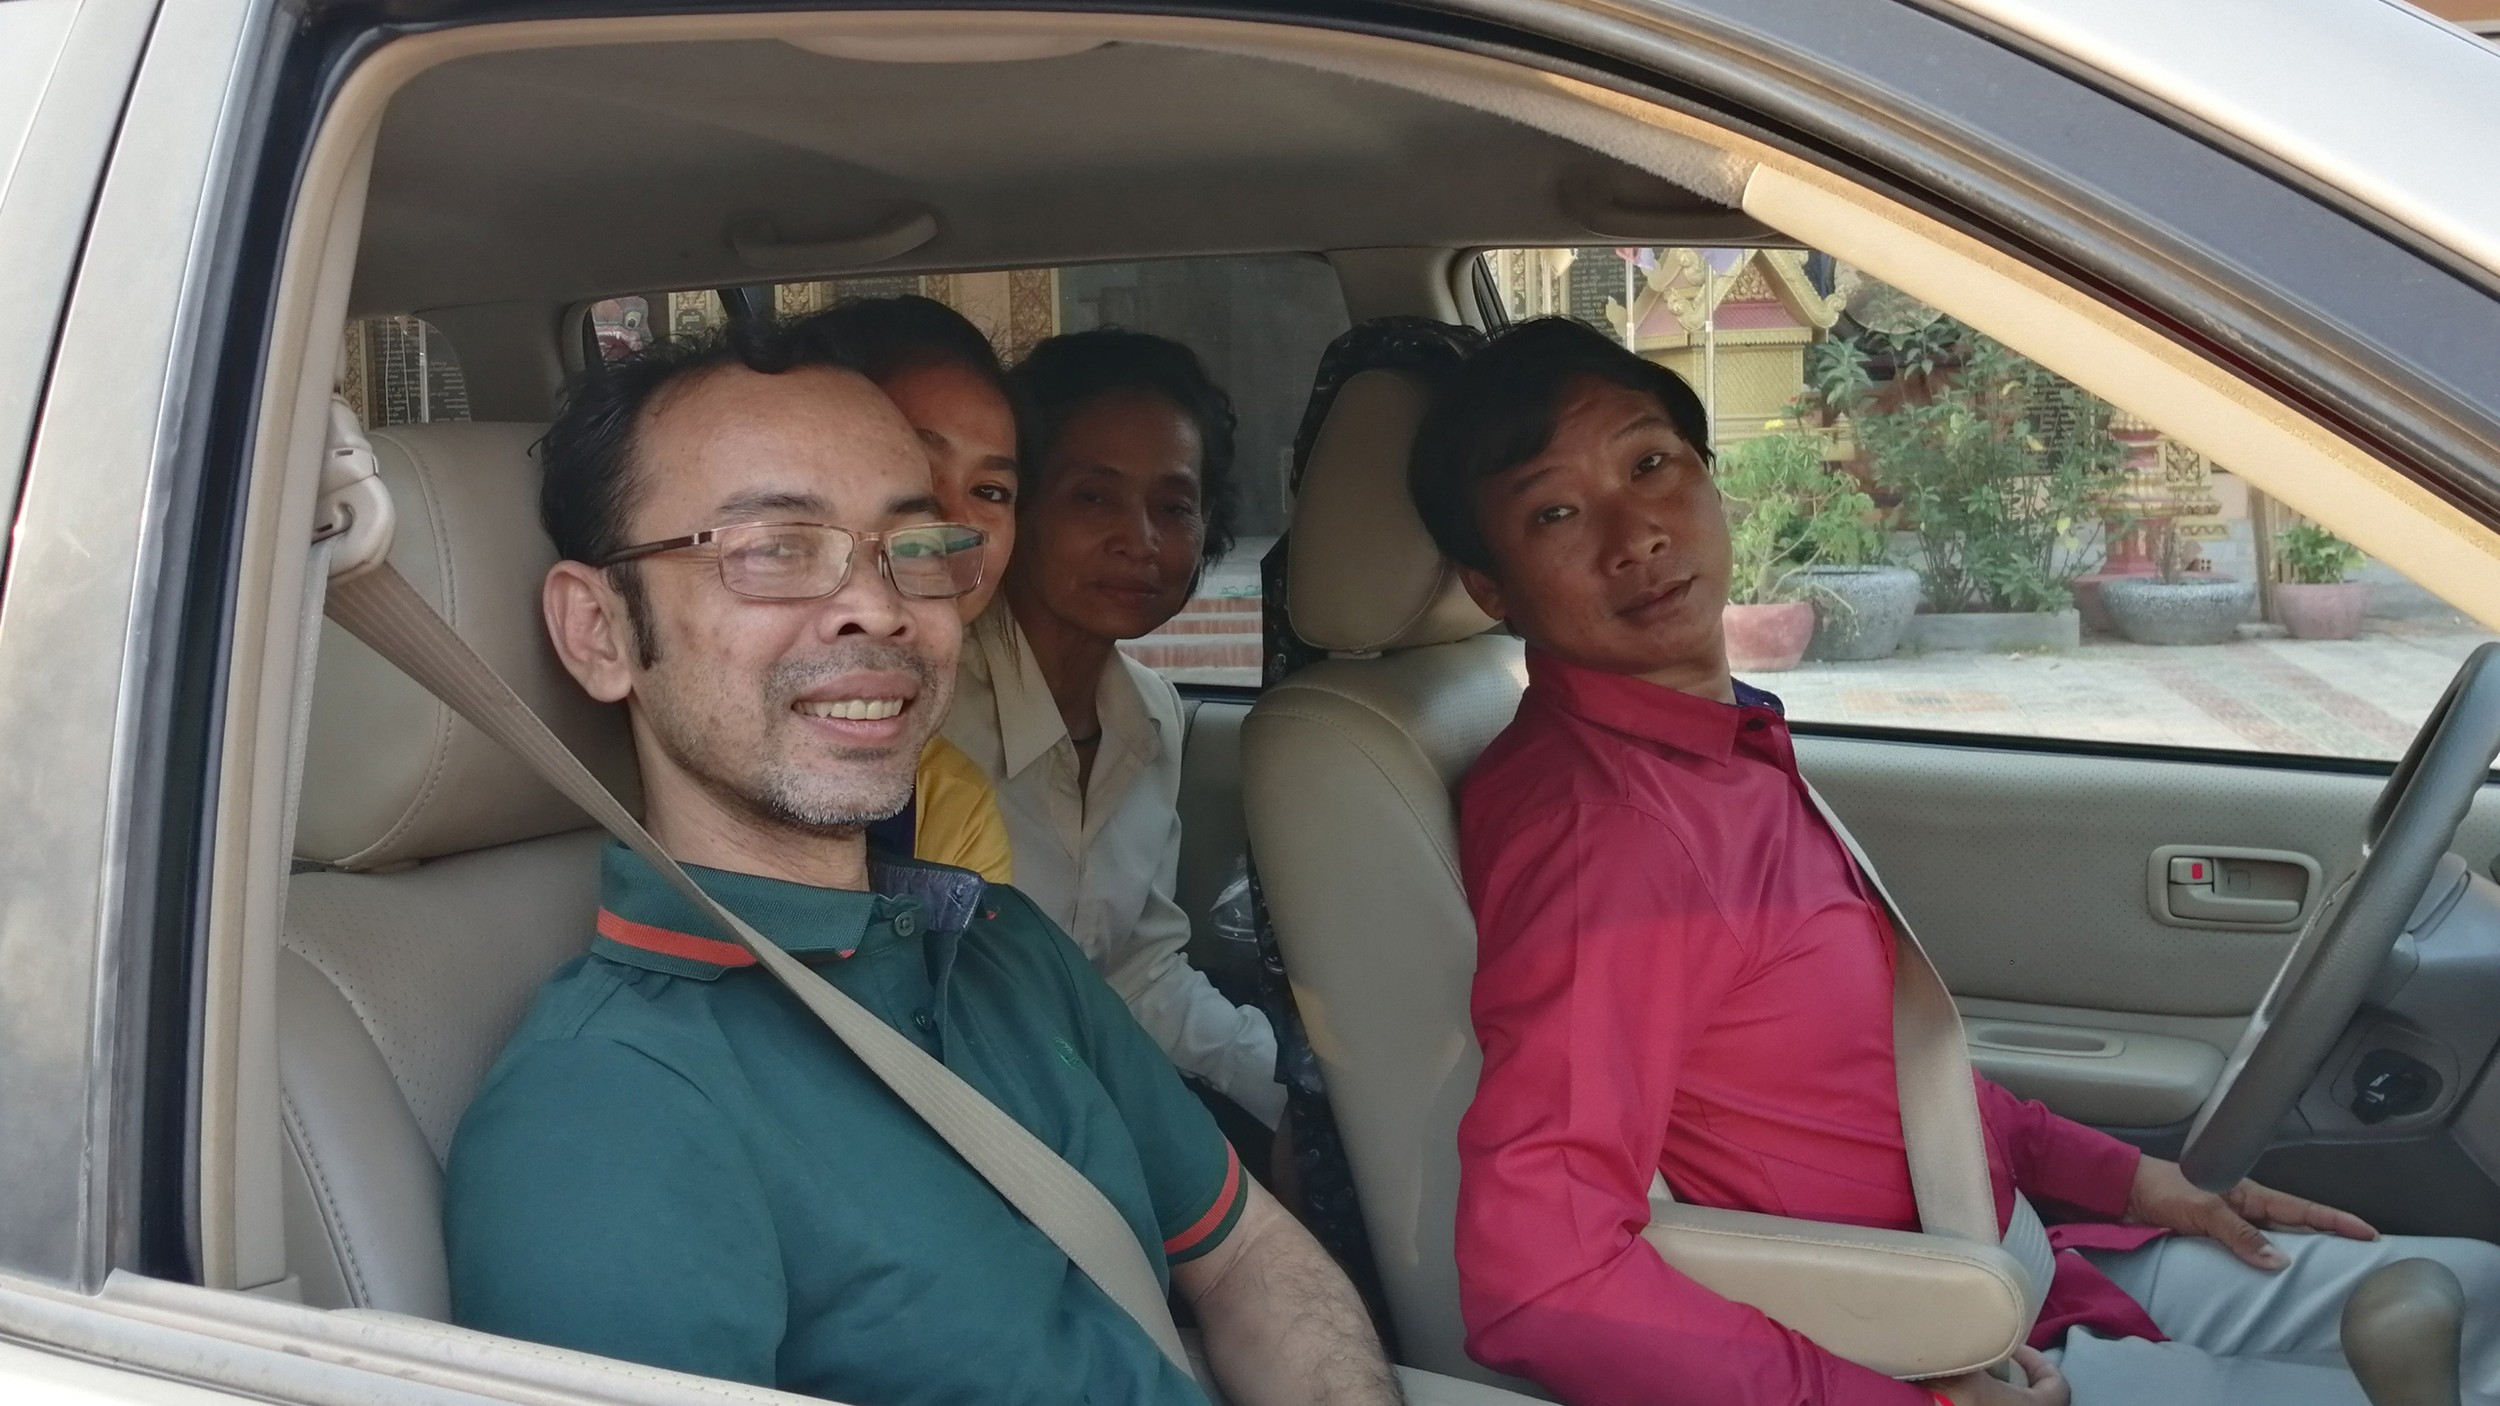 Mai Hong Sreang (far left) prepares to visit a pagoda to receive a blessing following his release from prison, April 3, 2020. Credit: RFA